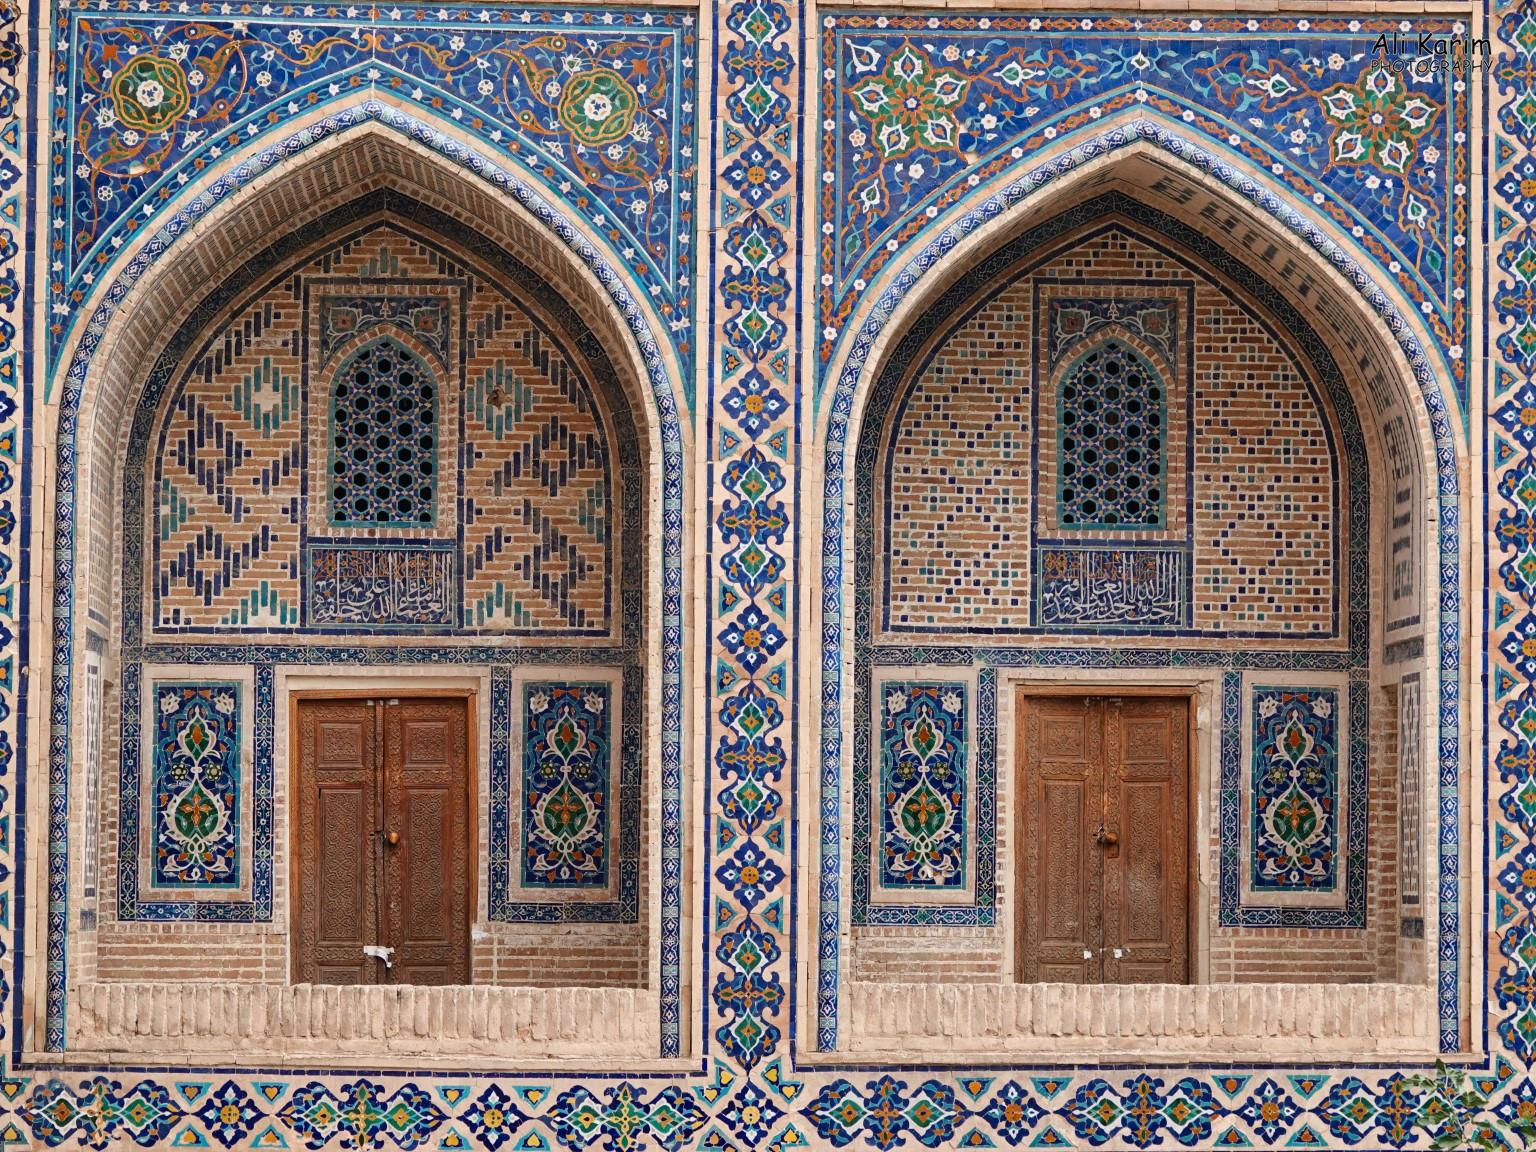 More Samarkand, Beautiful design and décor inside one of the madrassah's